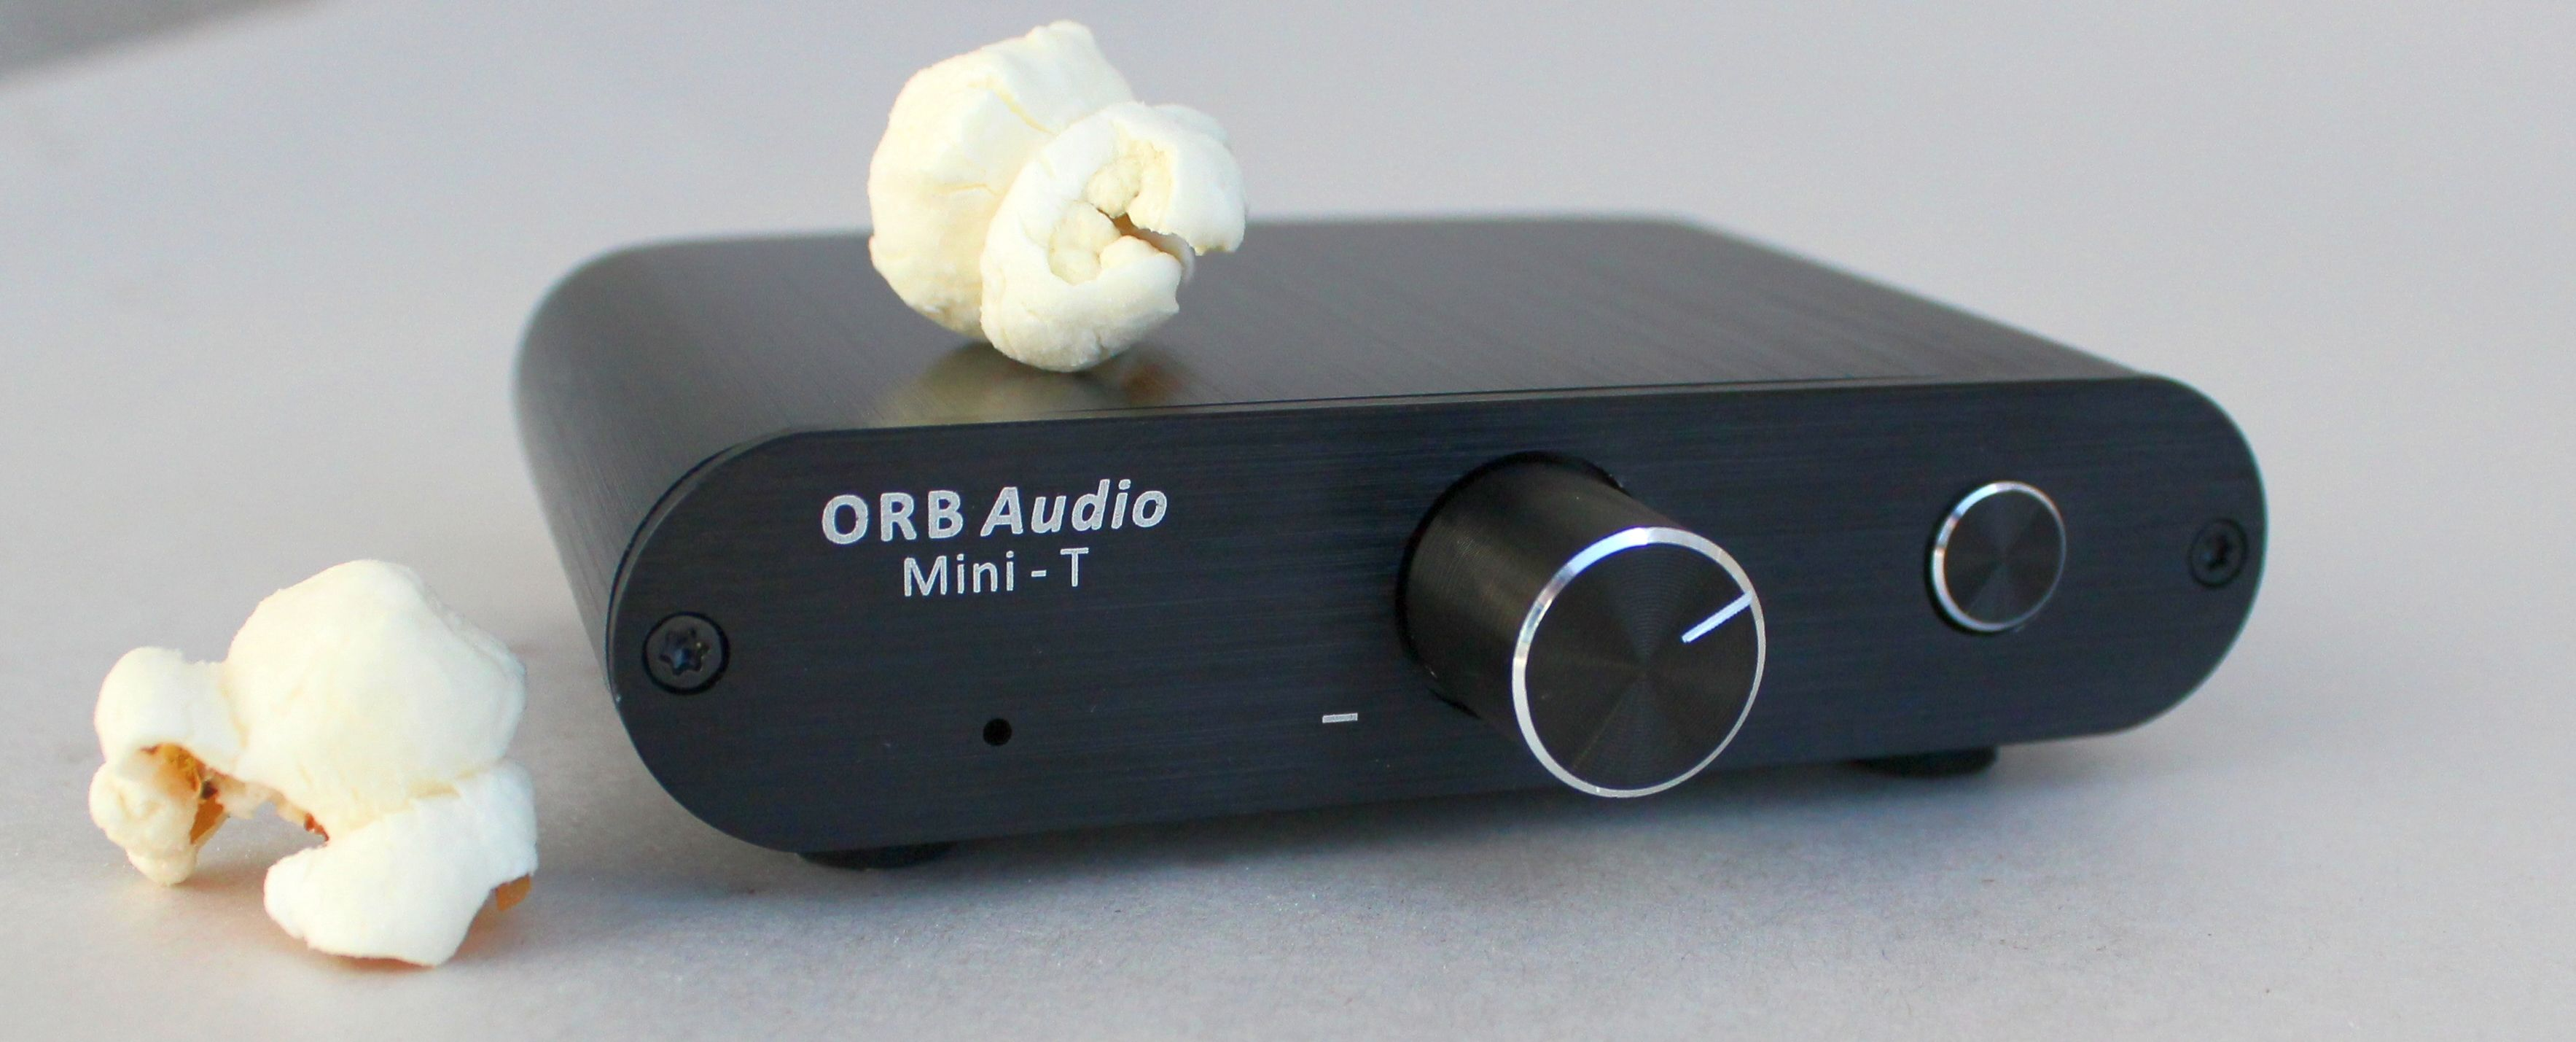 Power Amplifier Compatible With Tv Audio Orb Mini T Adds Sound To Any You Can Stream Brand New Amp Small High Performance Brings Almost Computer Or Mobile Device Features Include 2 Inputs